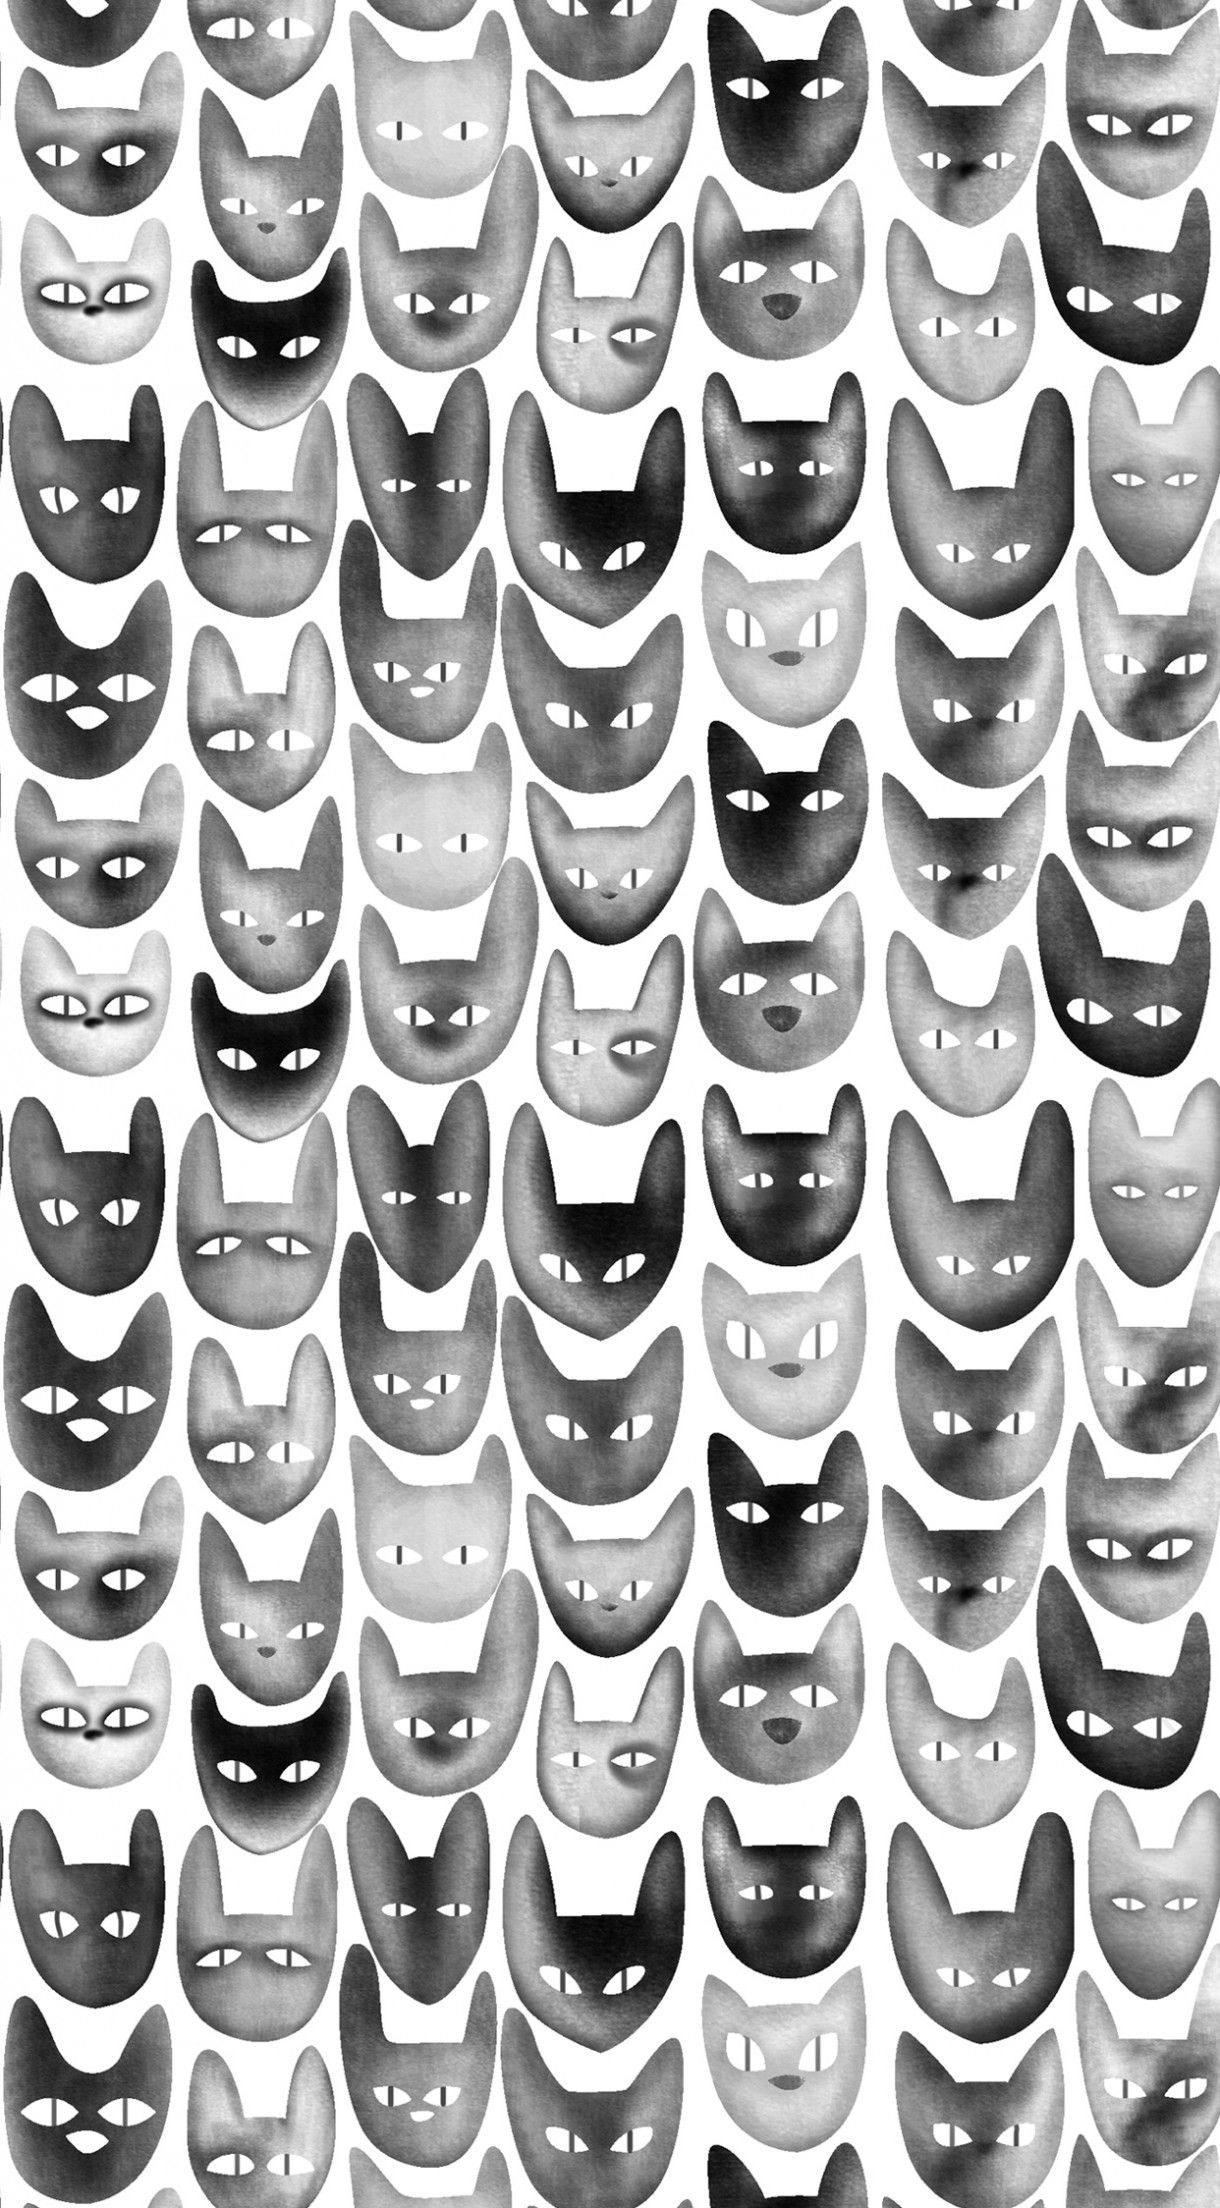 ↑↑TAP AND GET THE FREE APP Animals Cats Fun Black White HD iPhone